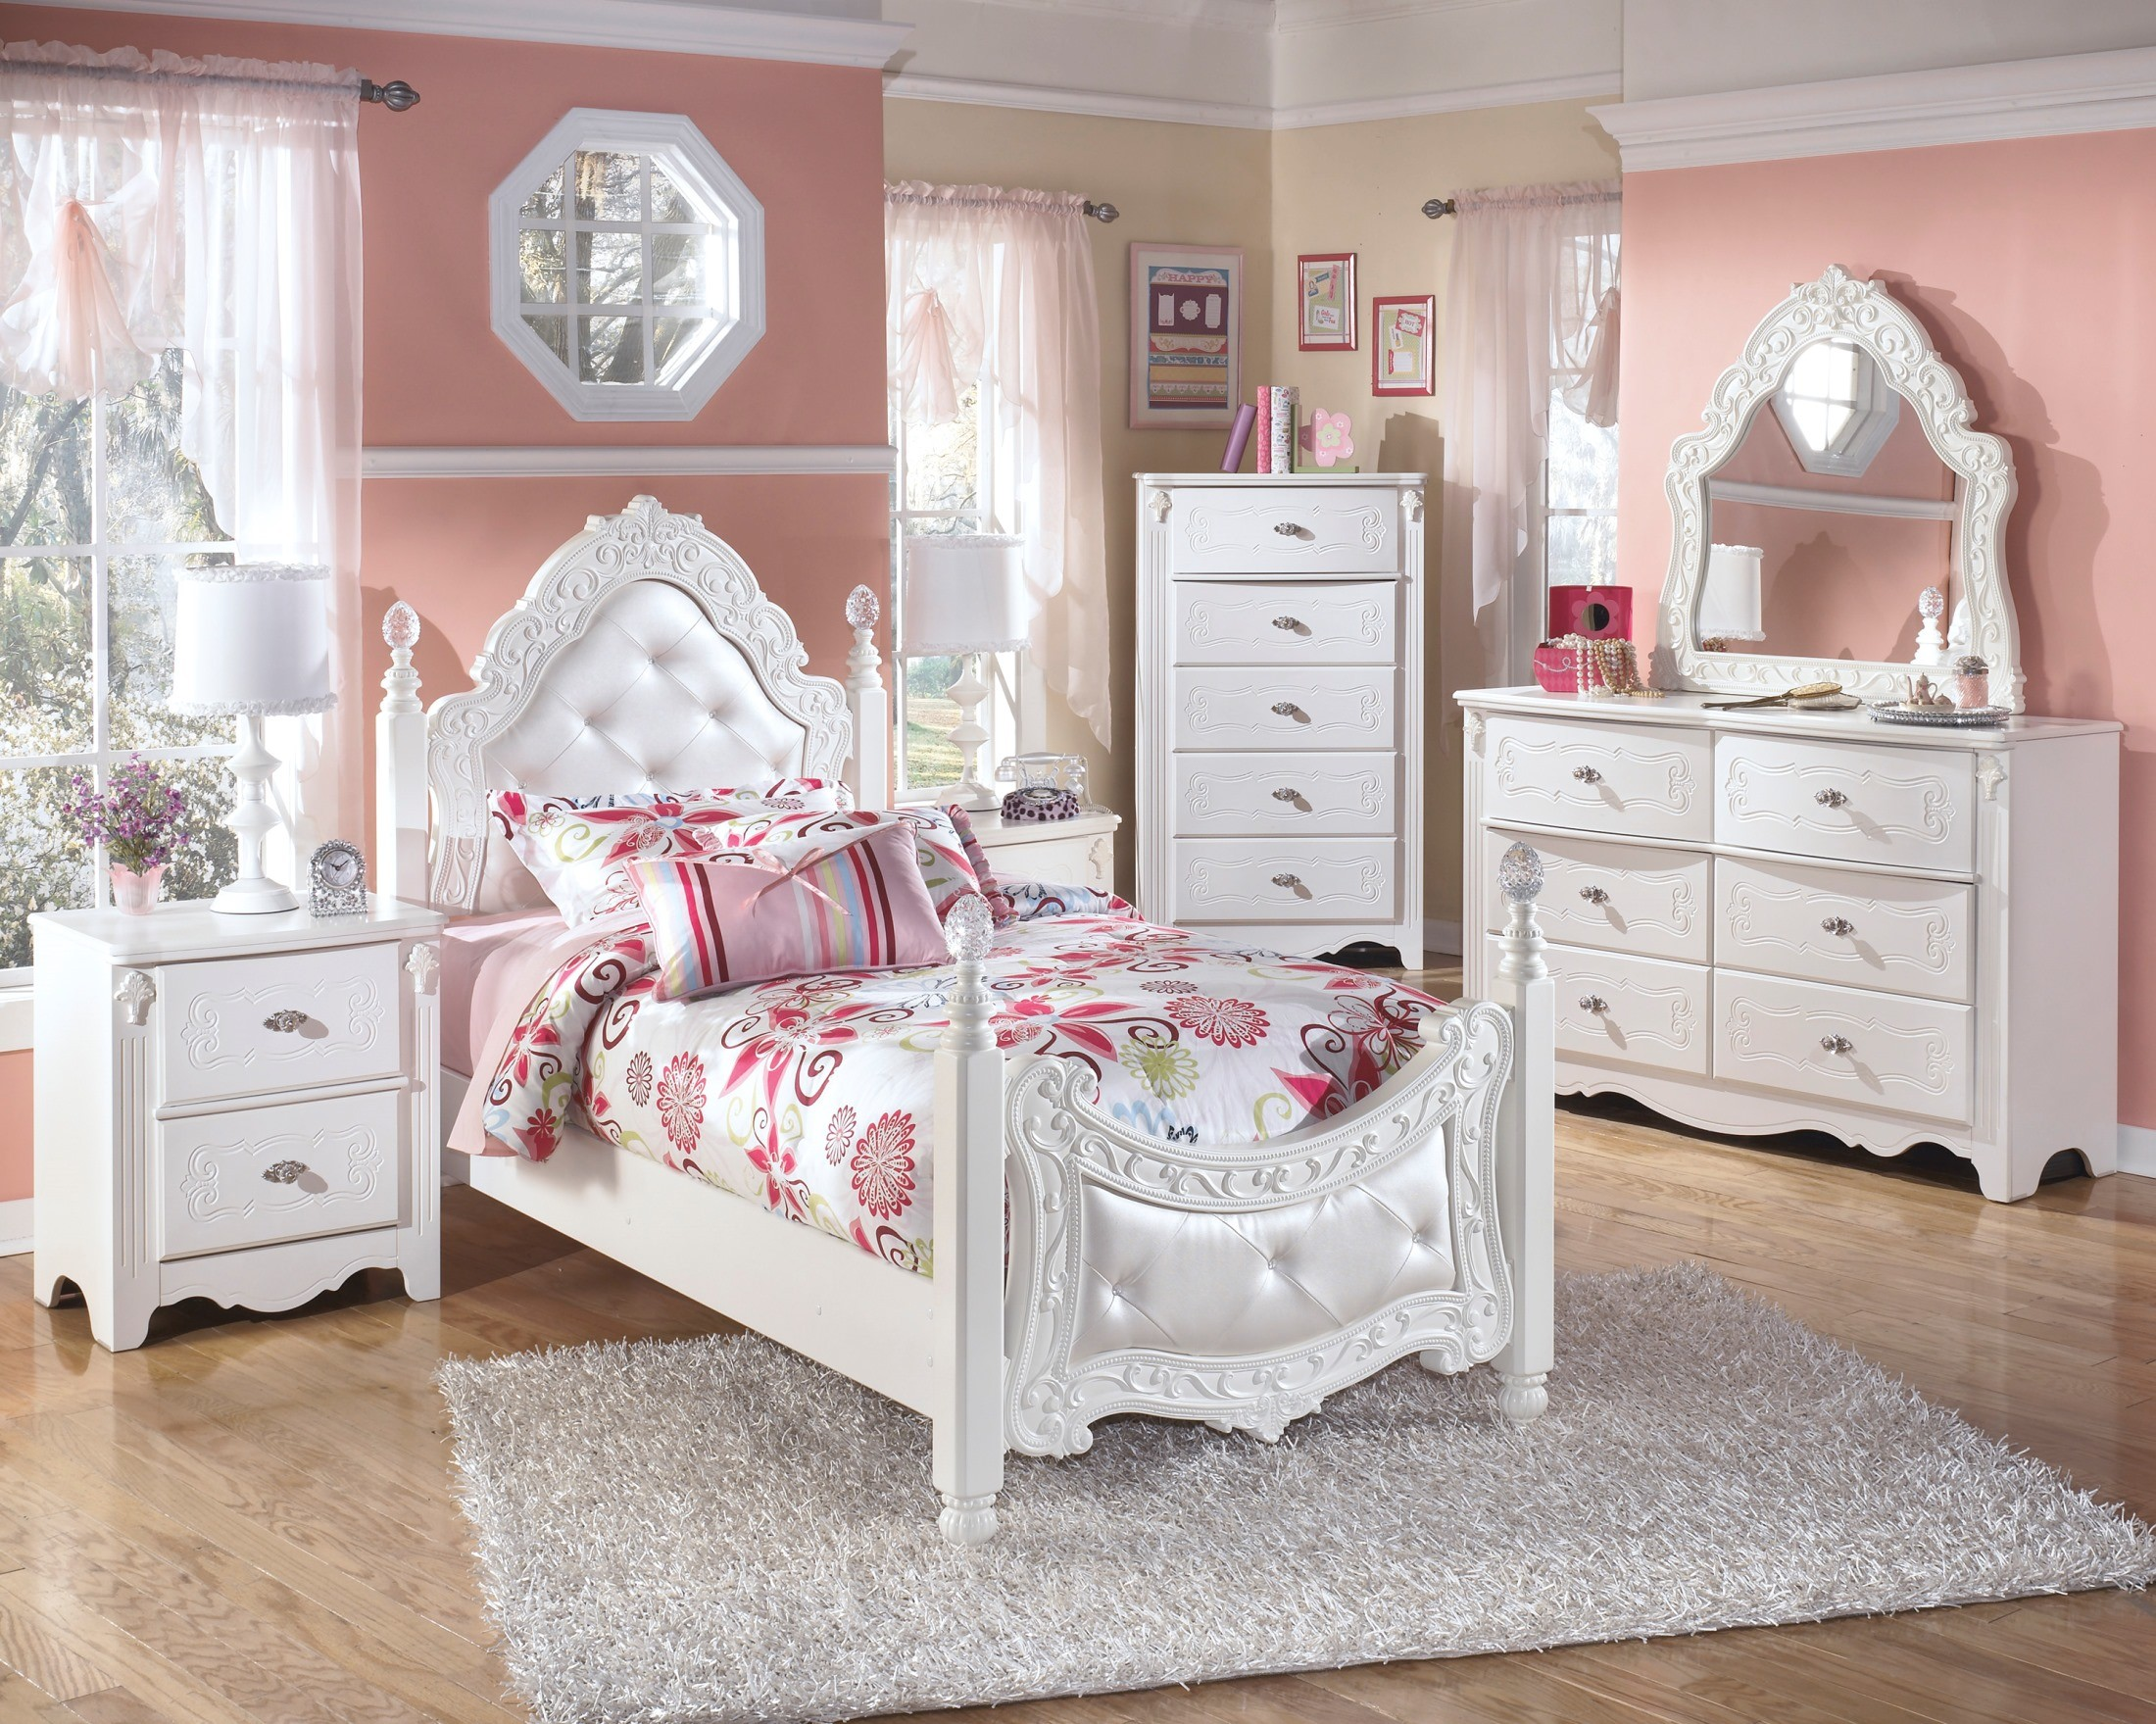 Ashley white bedroom furniture - 2301512exquisite Poster Bedroom Set From Ashley Asl B188 71 82n